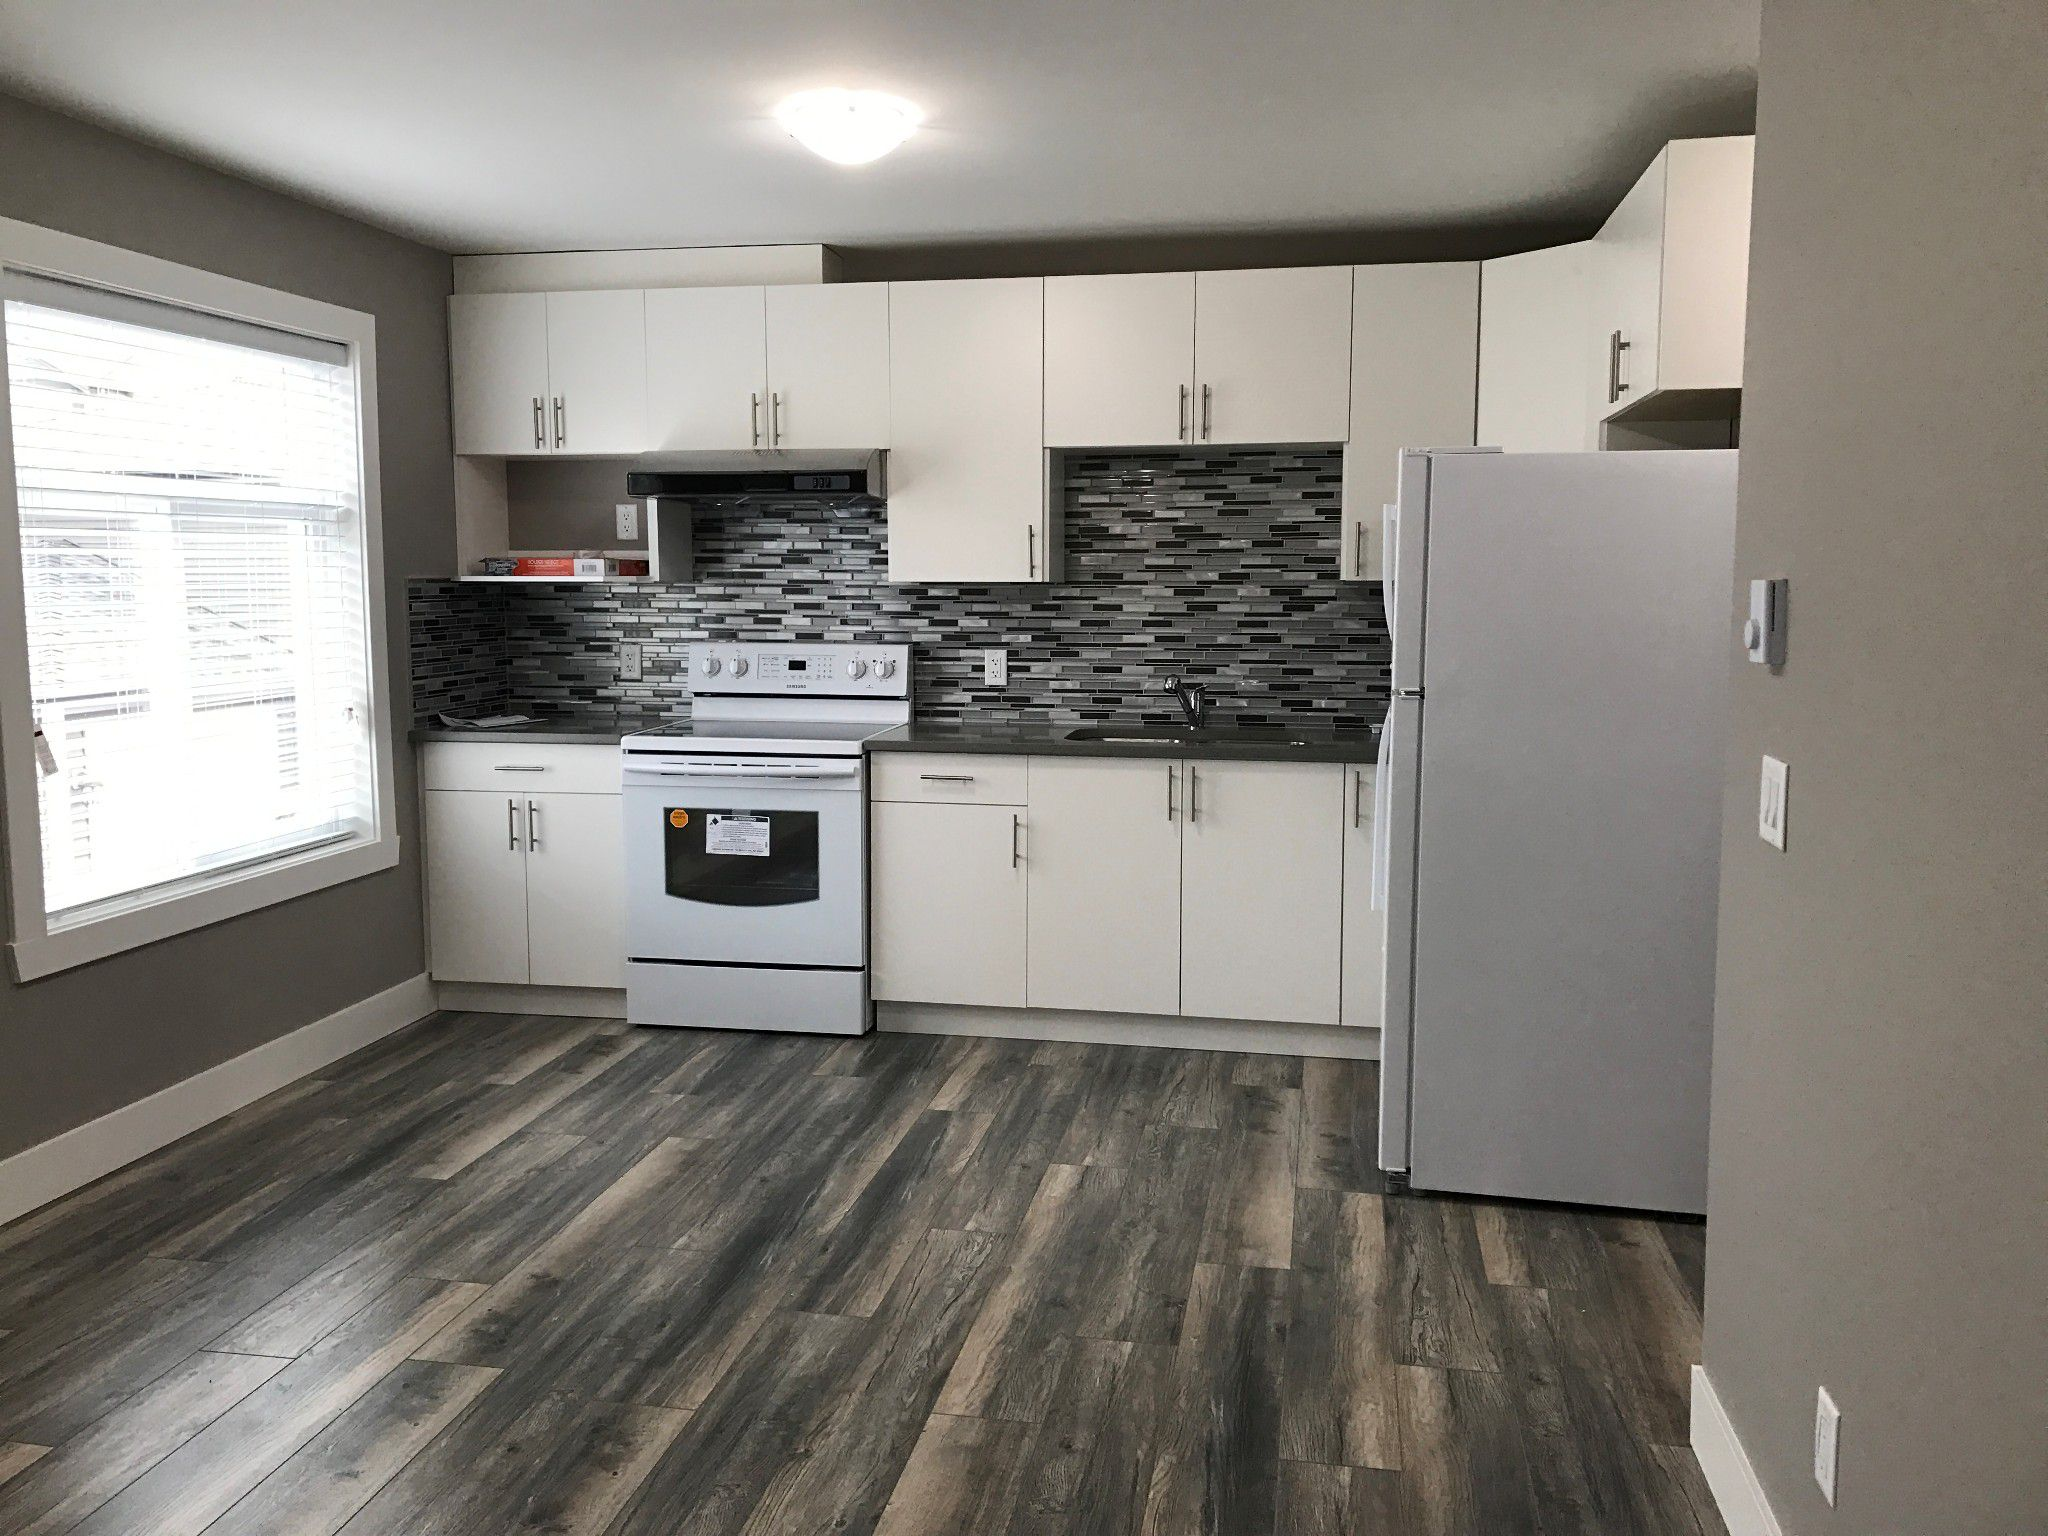 Main Photo: C 4352 Auguston Parkway N in Abbotsford: Abbotsford East Condo for rent